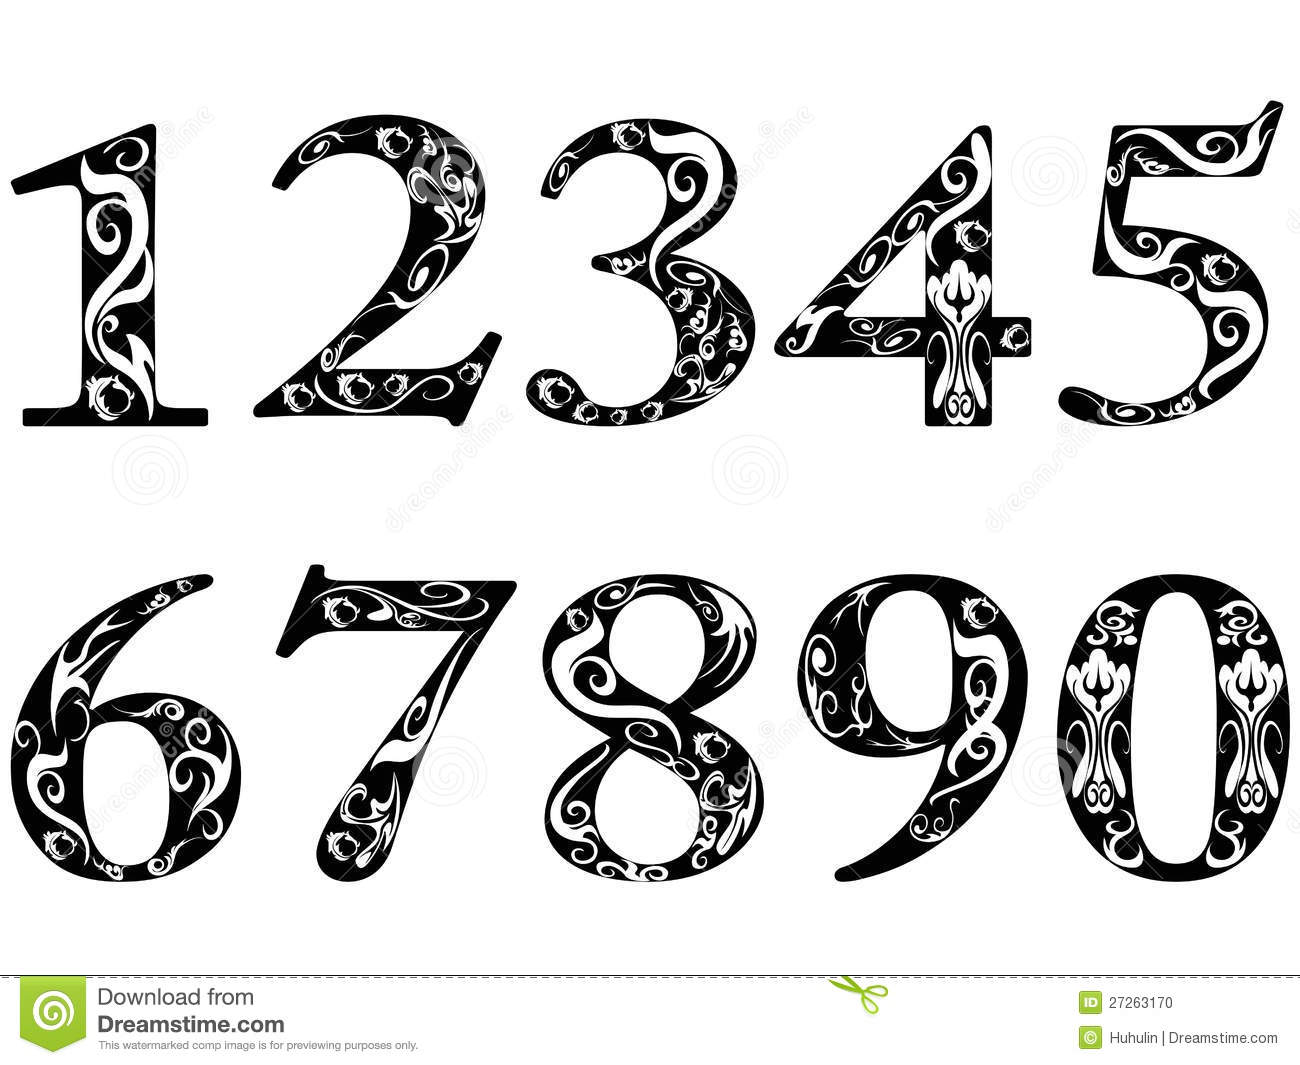 Fancy font number images fonts